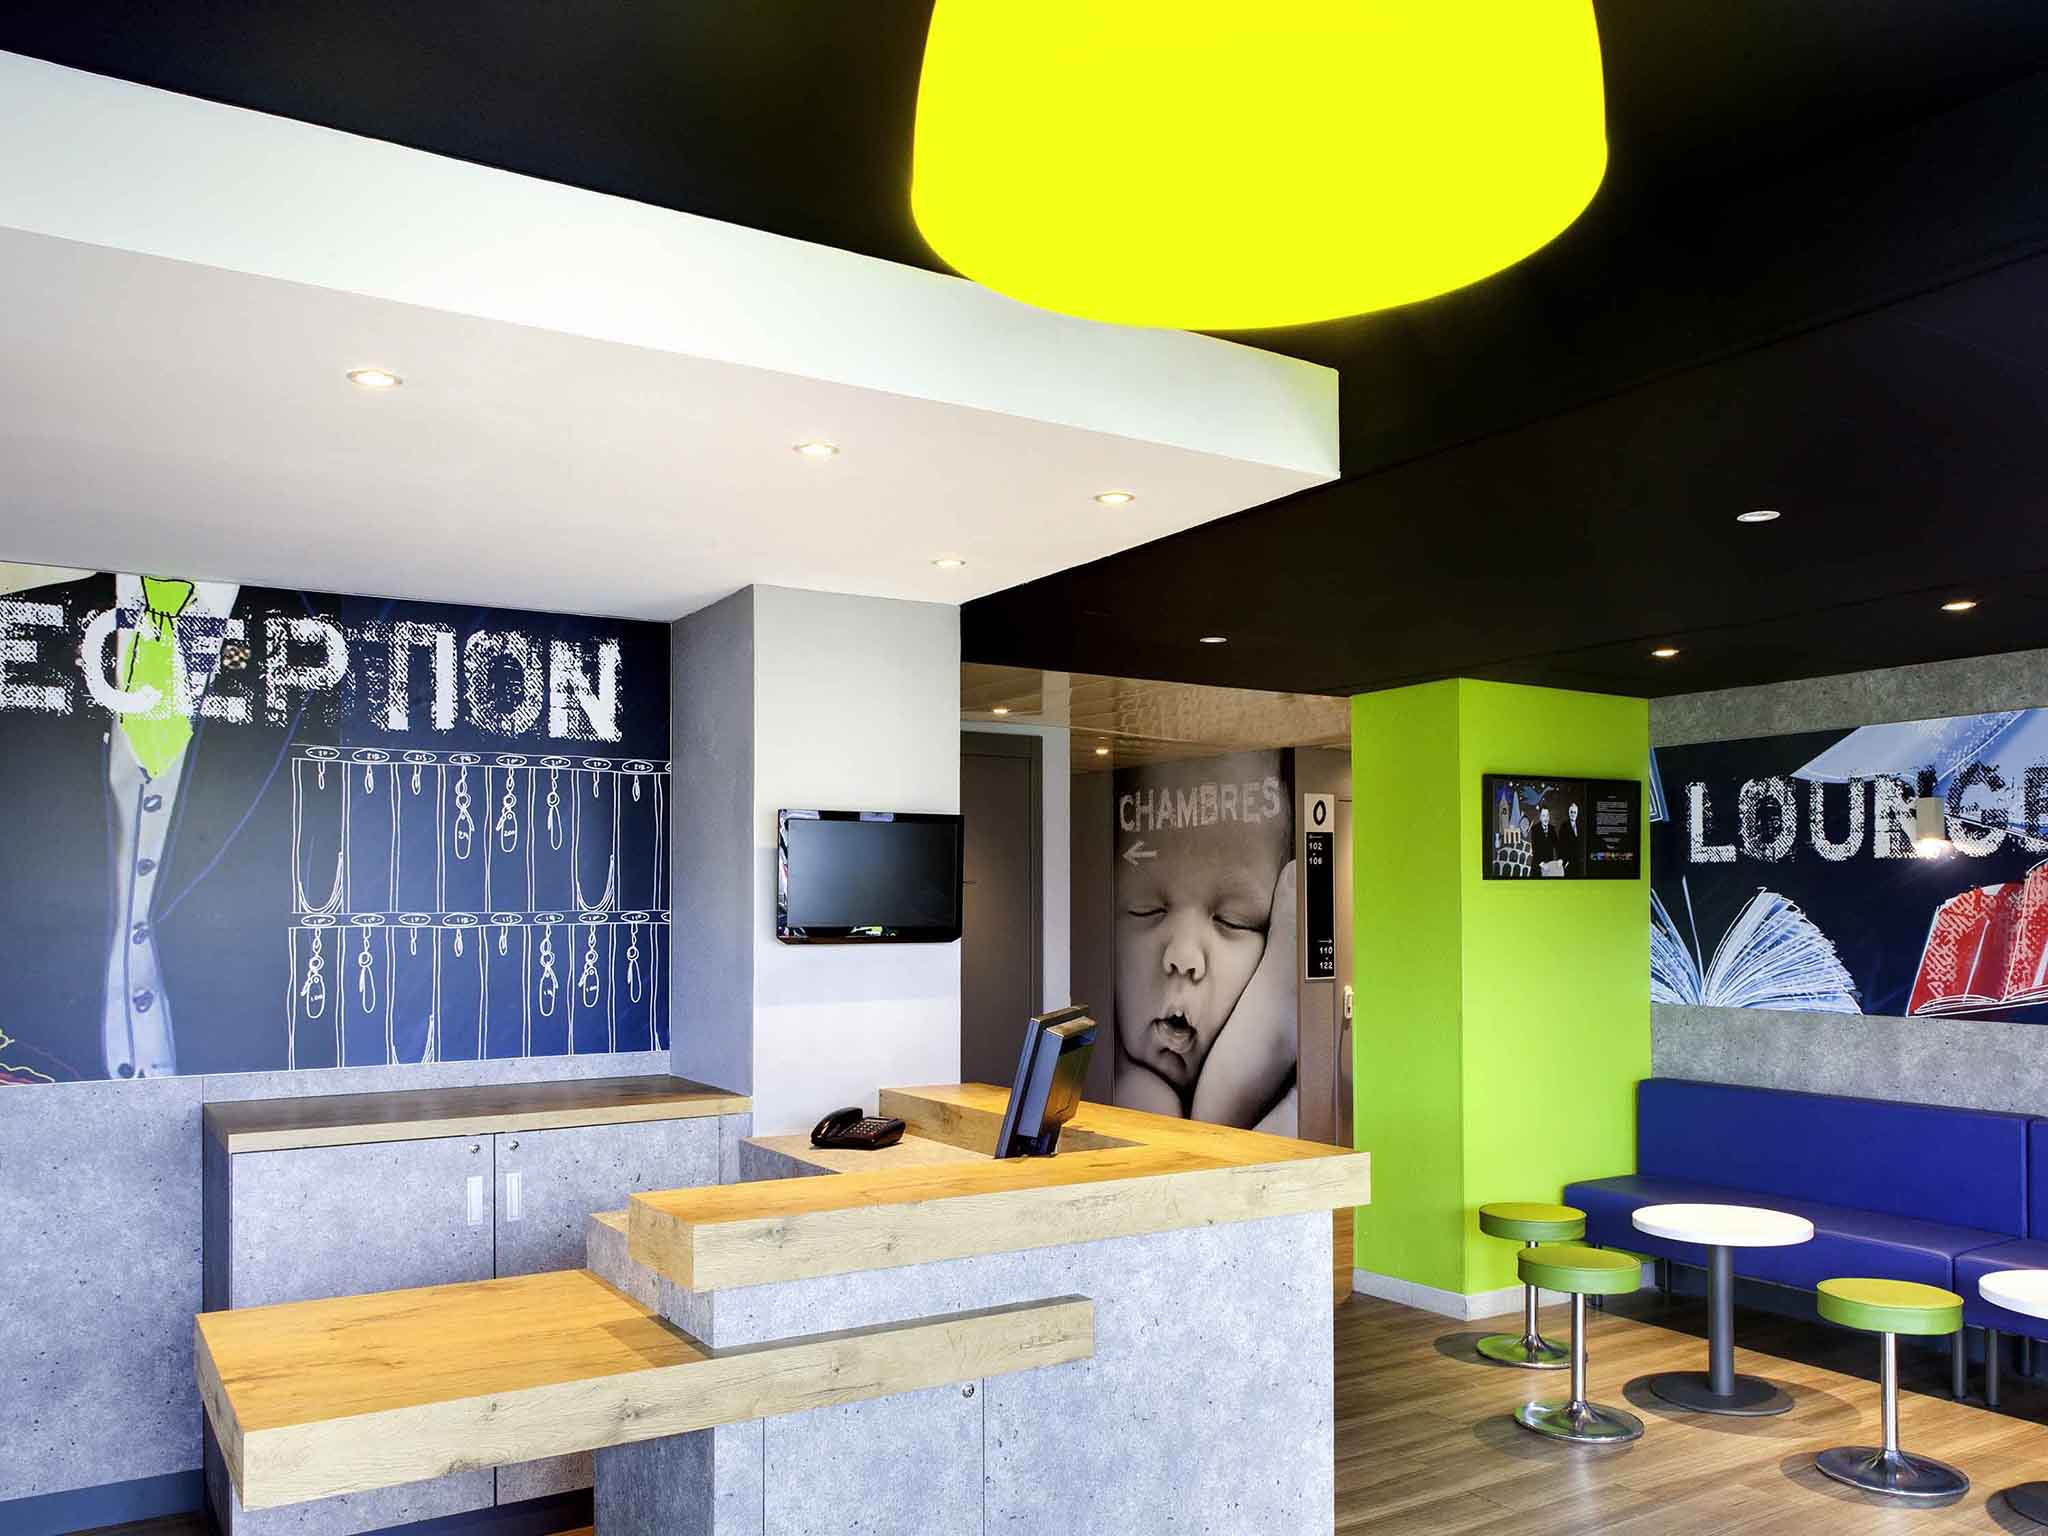 hotel in riom ibis bud clermont ferrand nord riom